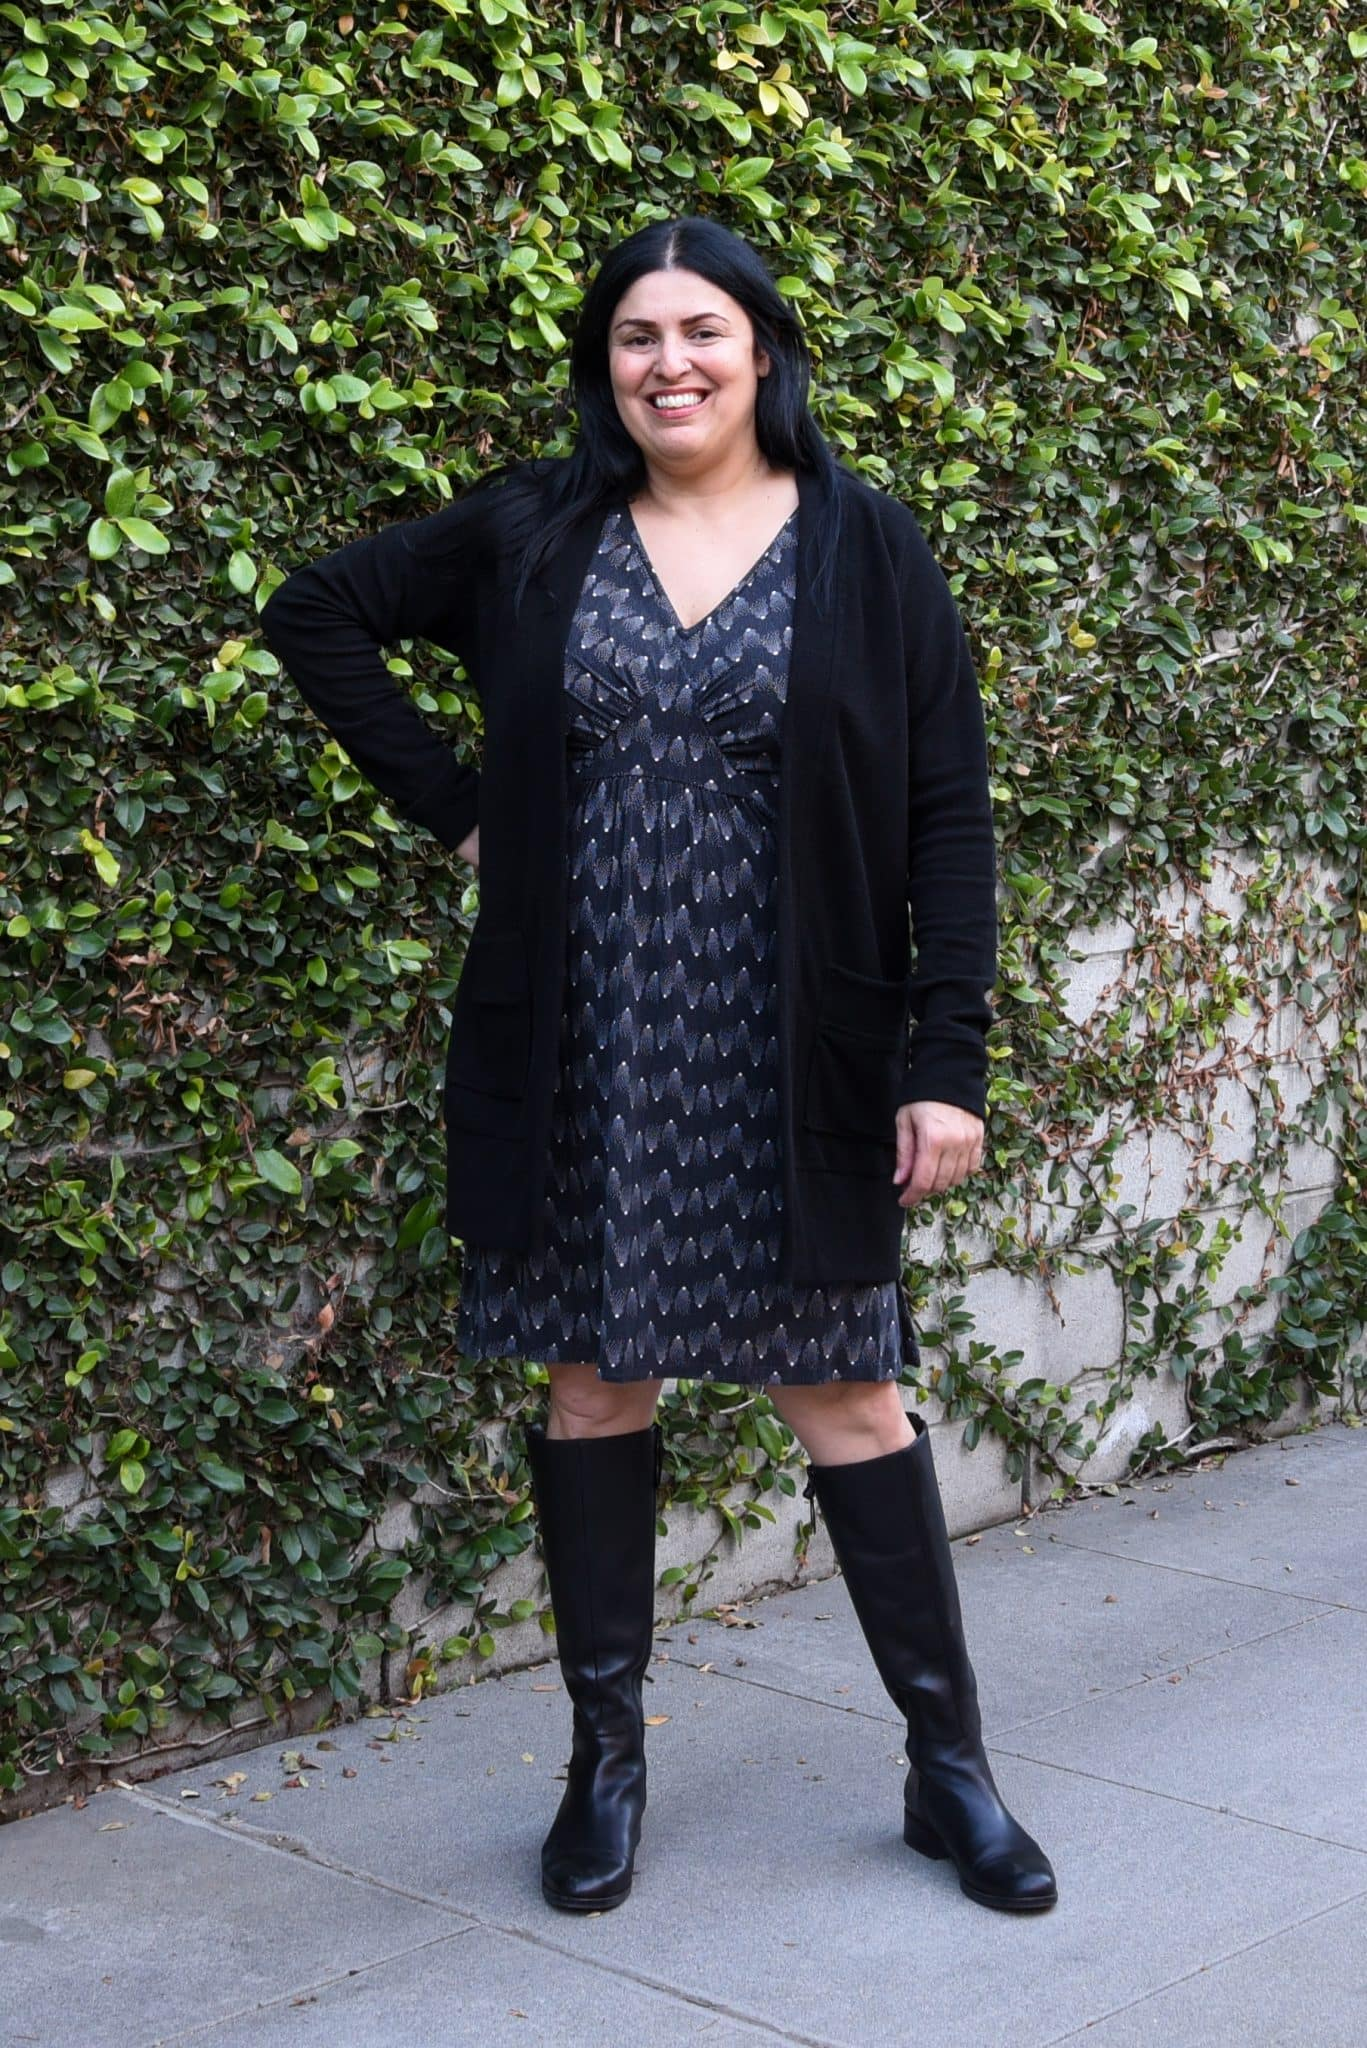 Image of woman wearing a long, black cardigan and a black dress